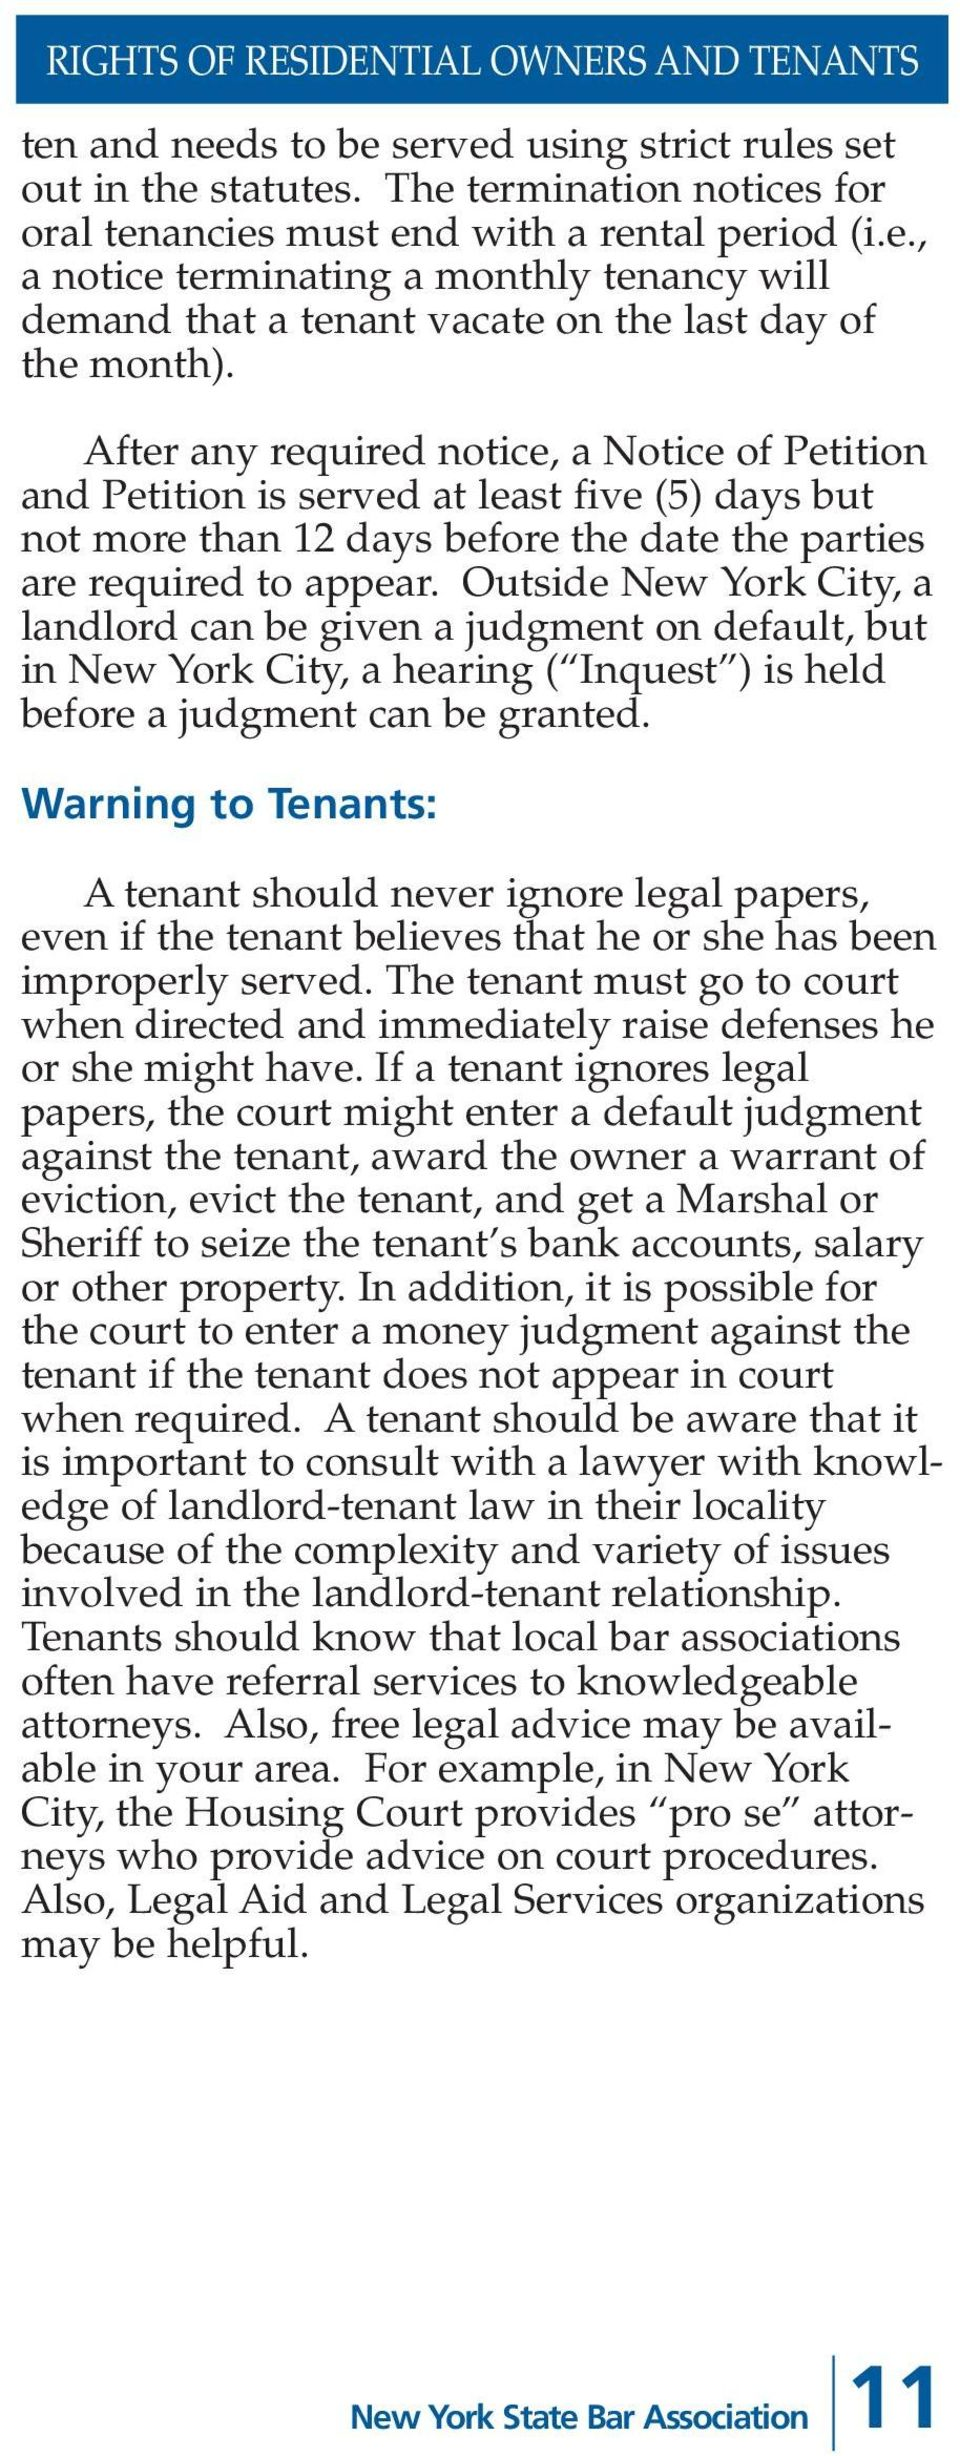 Outside New York City, a landlord can be given a judgment on default, but in New York City, a hearing ( Inquest ) is held before a judgment can be granted.